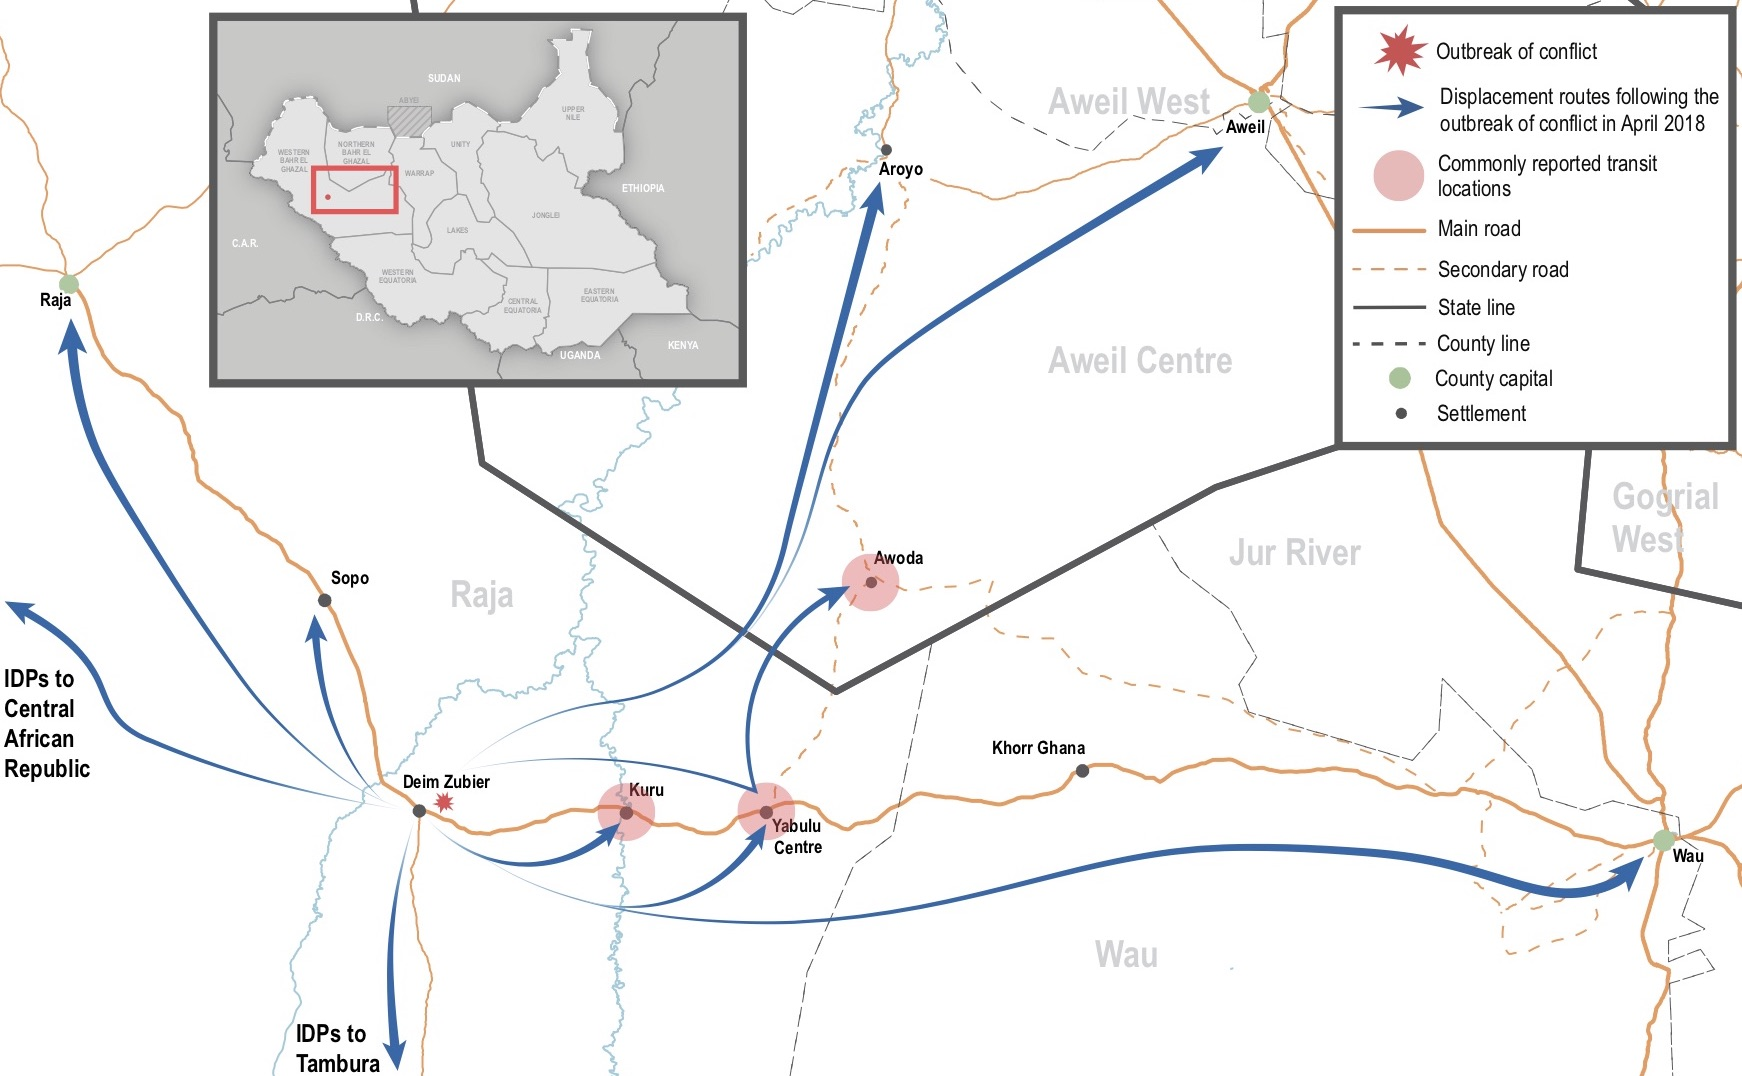 Displacement routes and destinations of IDPs fleeing conflict in Deim Zubier, Raja County, South Sudan. ©REACH/2018